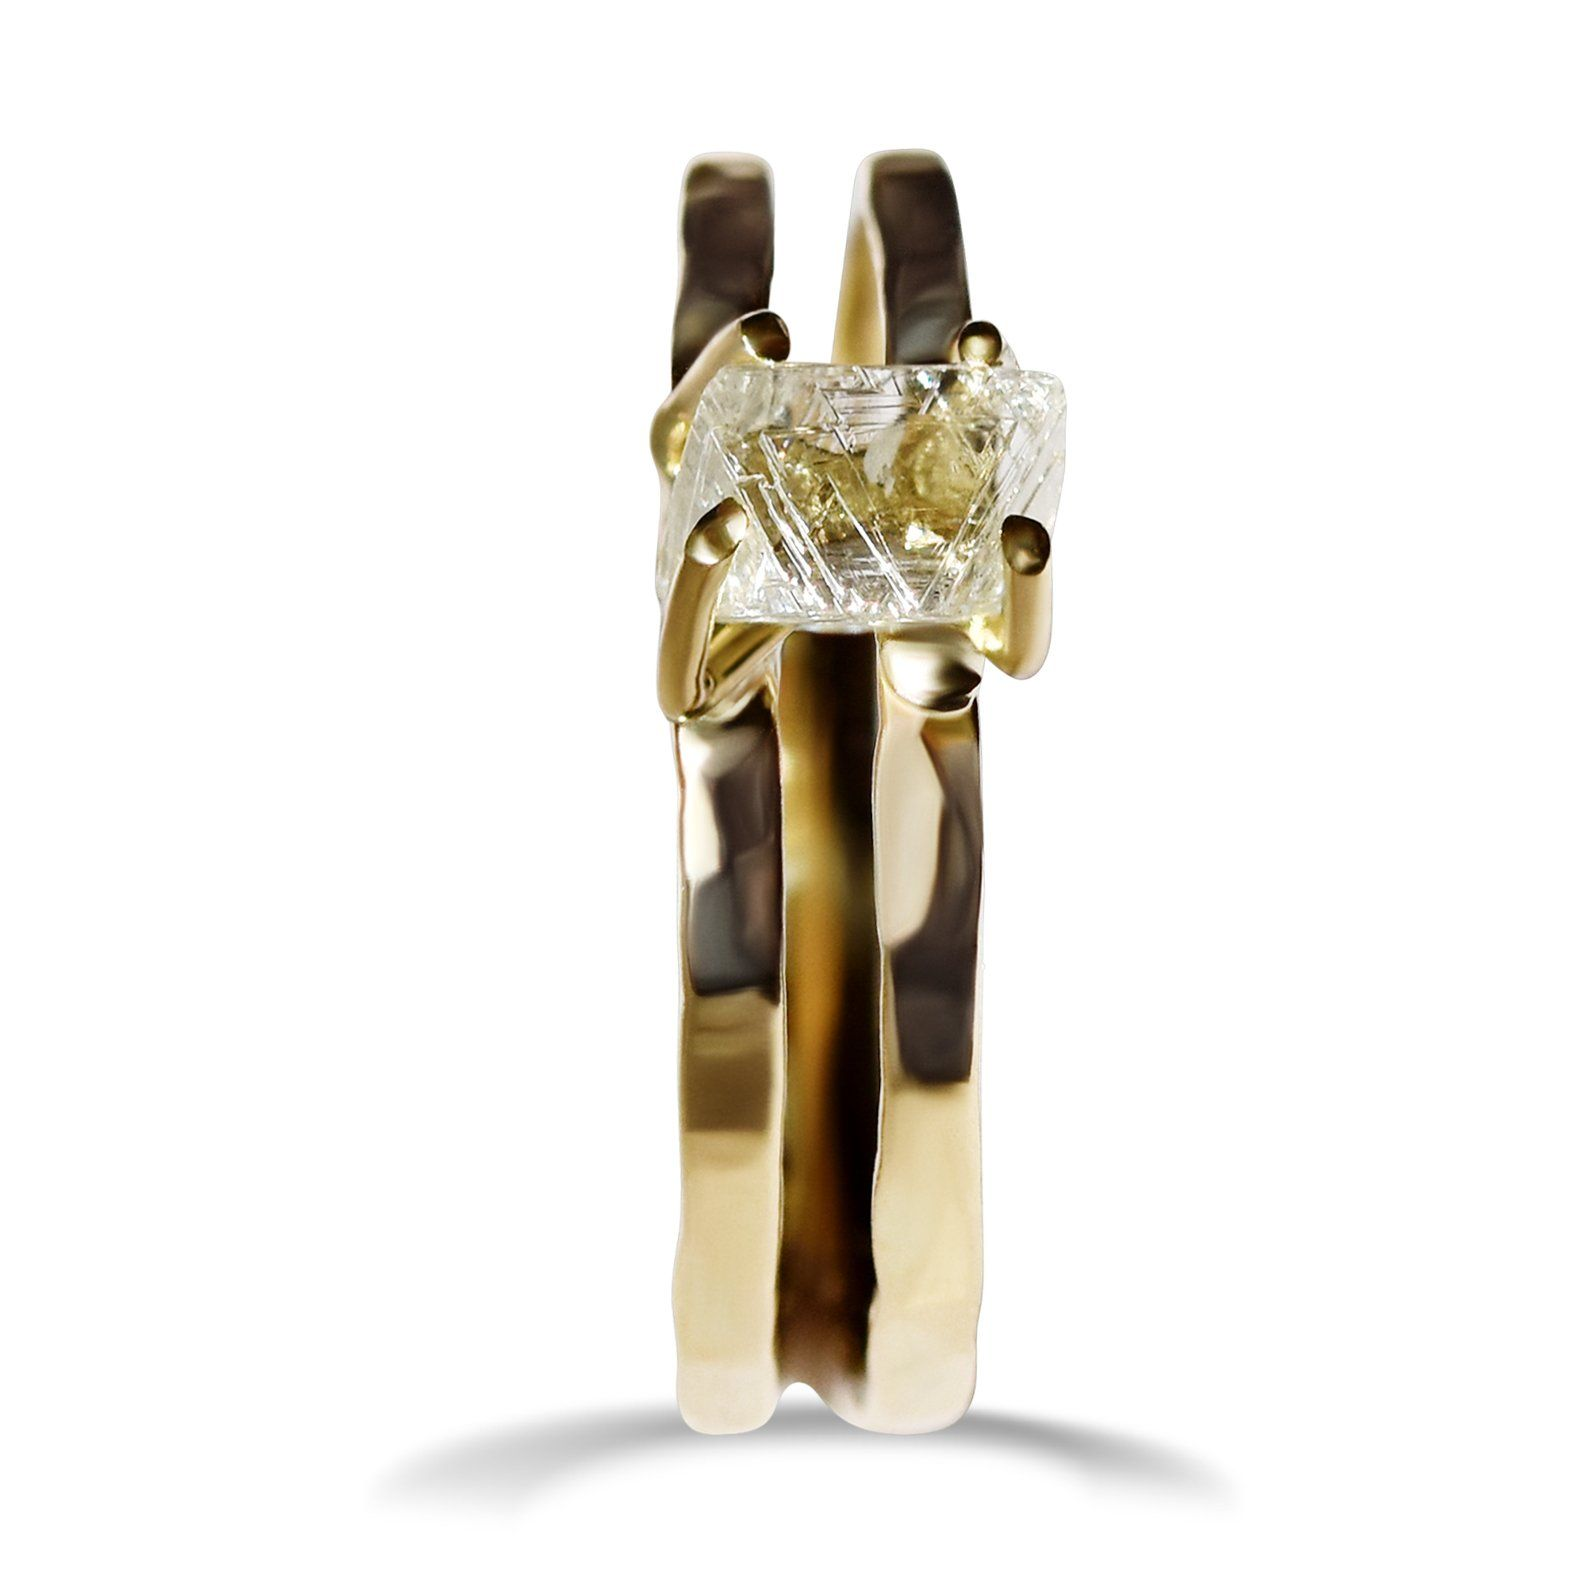 Ezaria Ring - A double banded raw diamond engagement ring Rings The Raw Stone